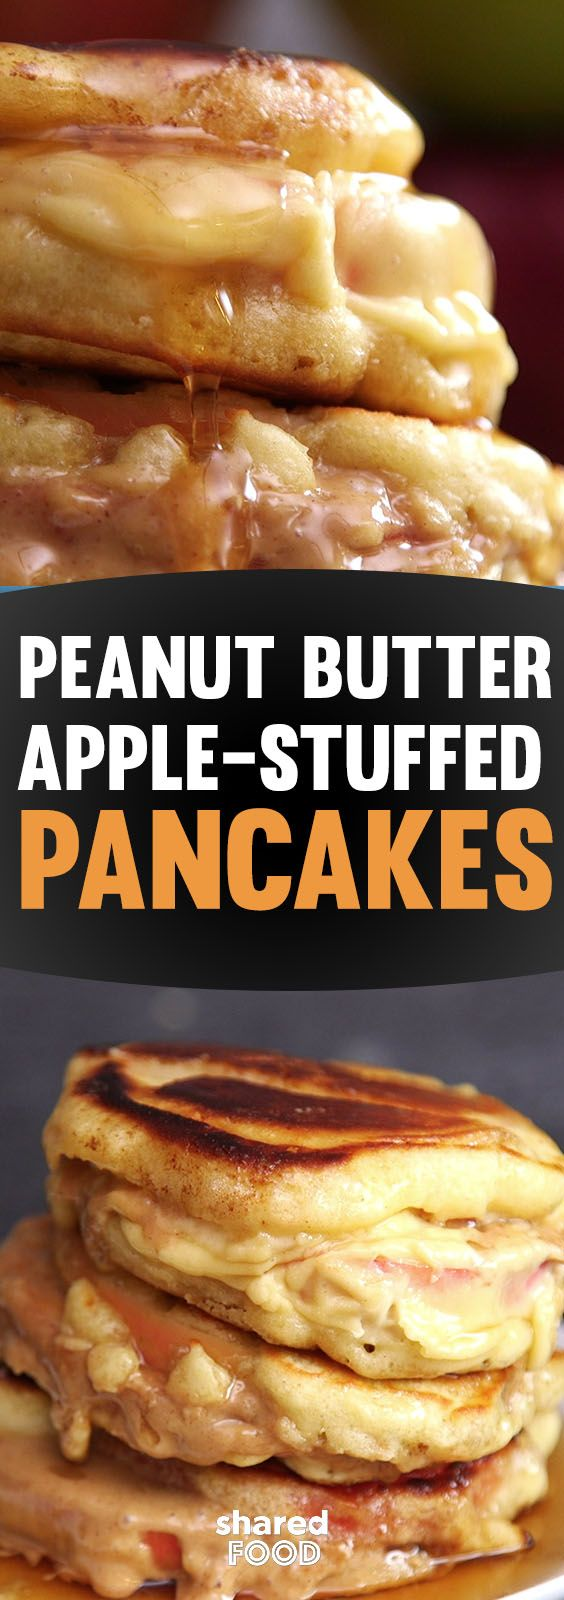 Pancakes are a staple in my family's weekend routine, so when Peanut Butter Apple-Stuffed Pancakes came around, our taste buds just couldn't believe it! It's ridiculously easy stepping up your basic pancakes with this recipe. Slice up your favorite apples into rounds, spread with peanut butter, then dunk 'em into pancake batter. Cook them in a pan, then serve with your favorite toppings. Here's to a new way to make Saturday morning great!